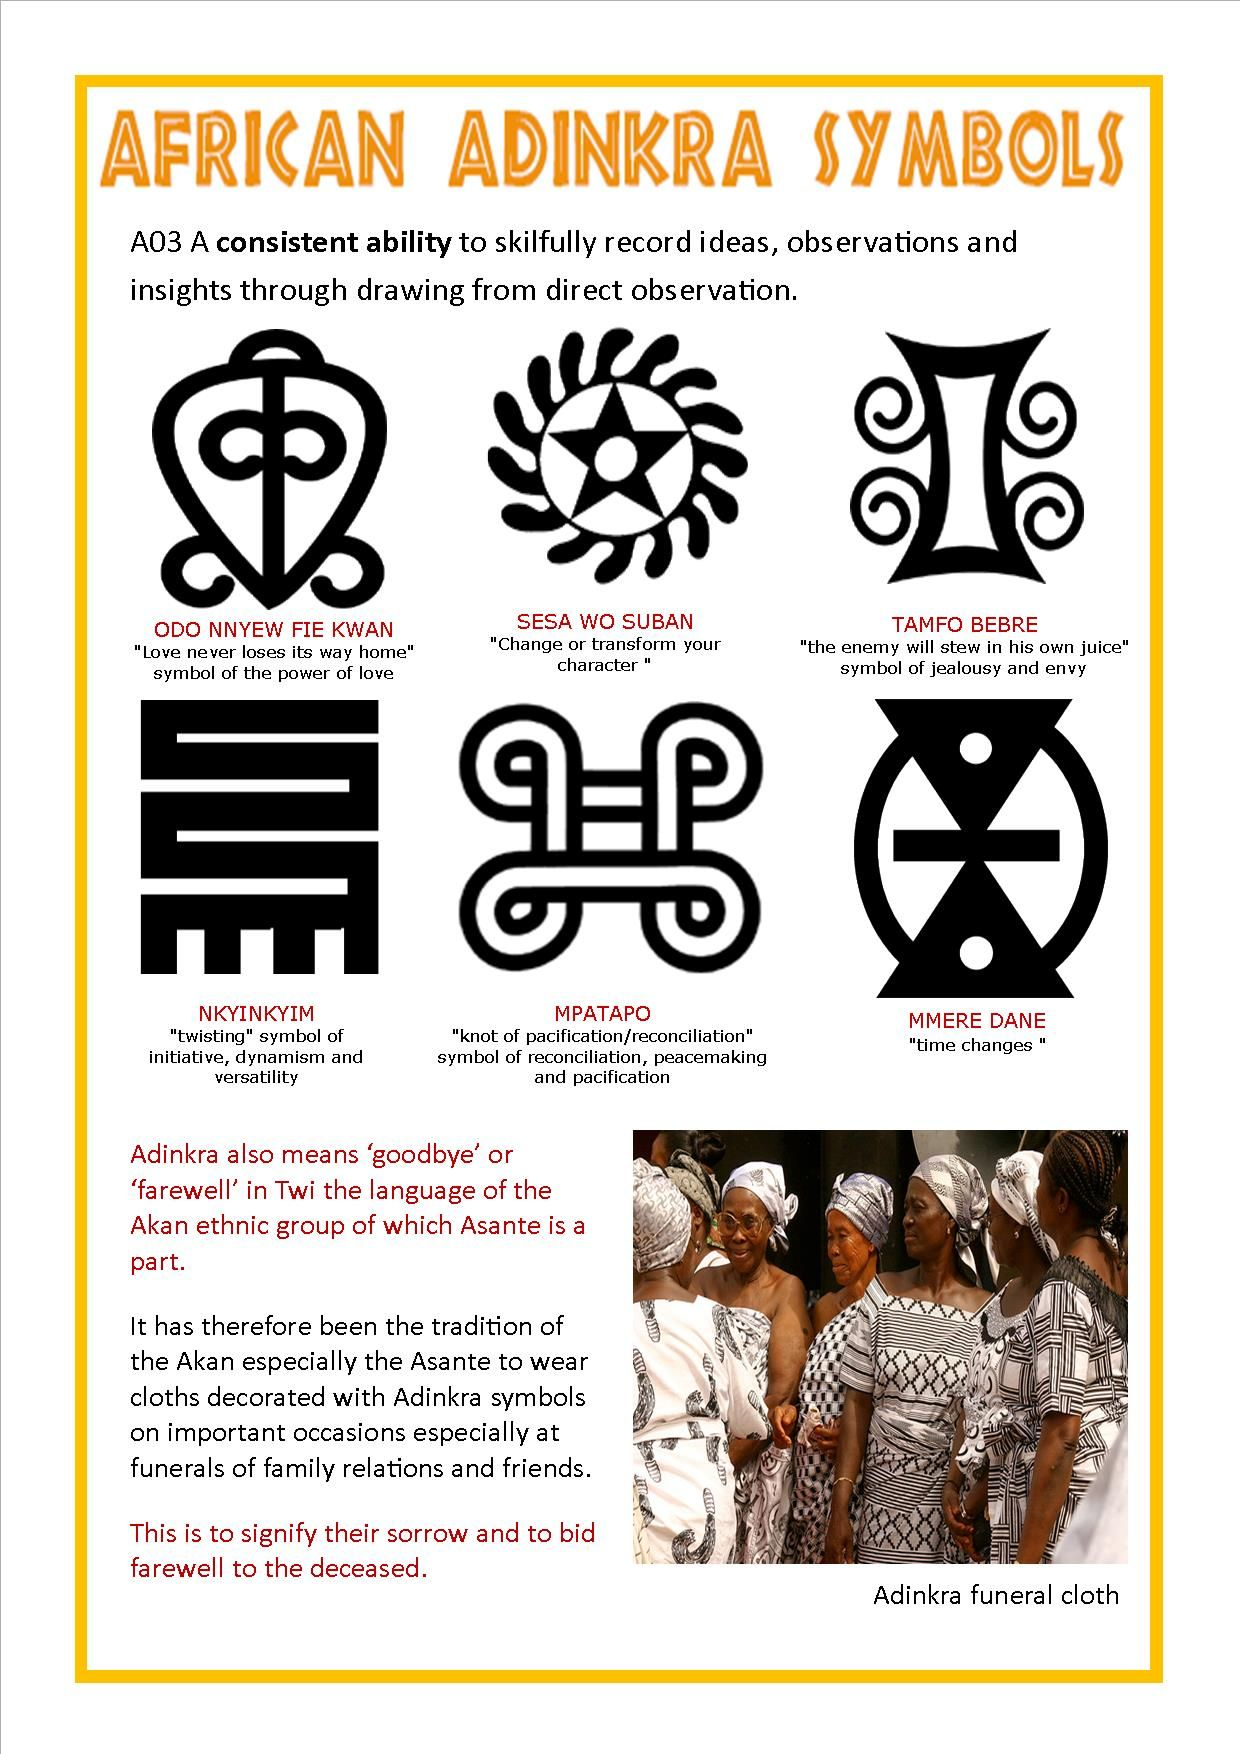 Adinkra symbols and their meanings art ed africa pinterest adinkra symbols and their meanings biocorpaavc